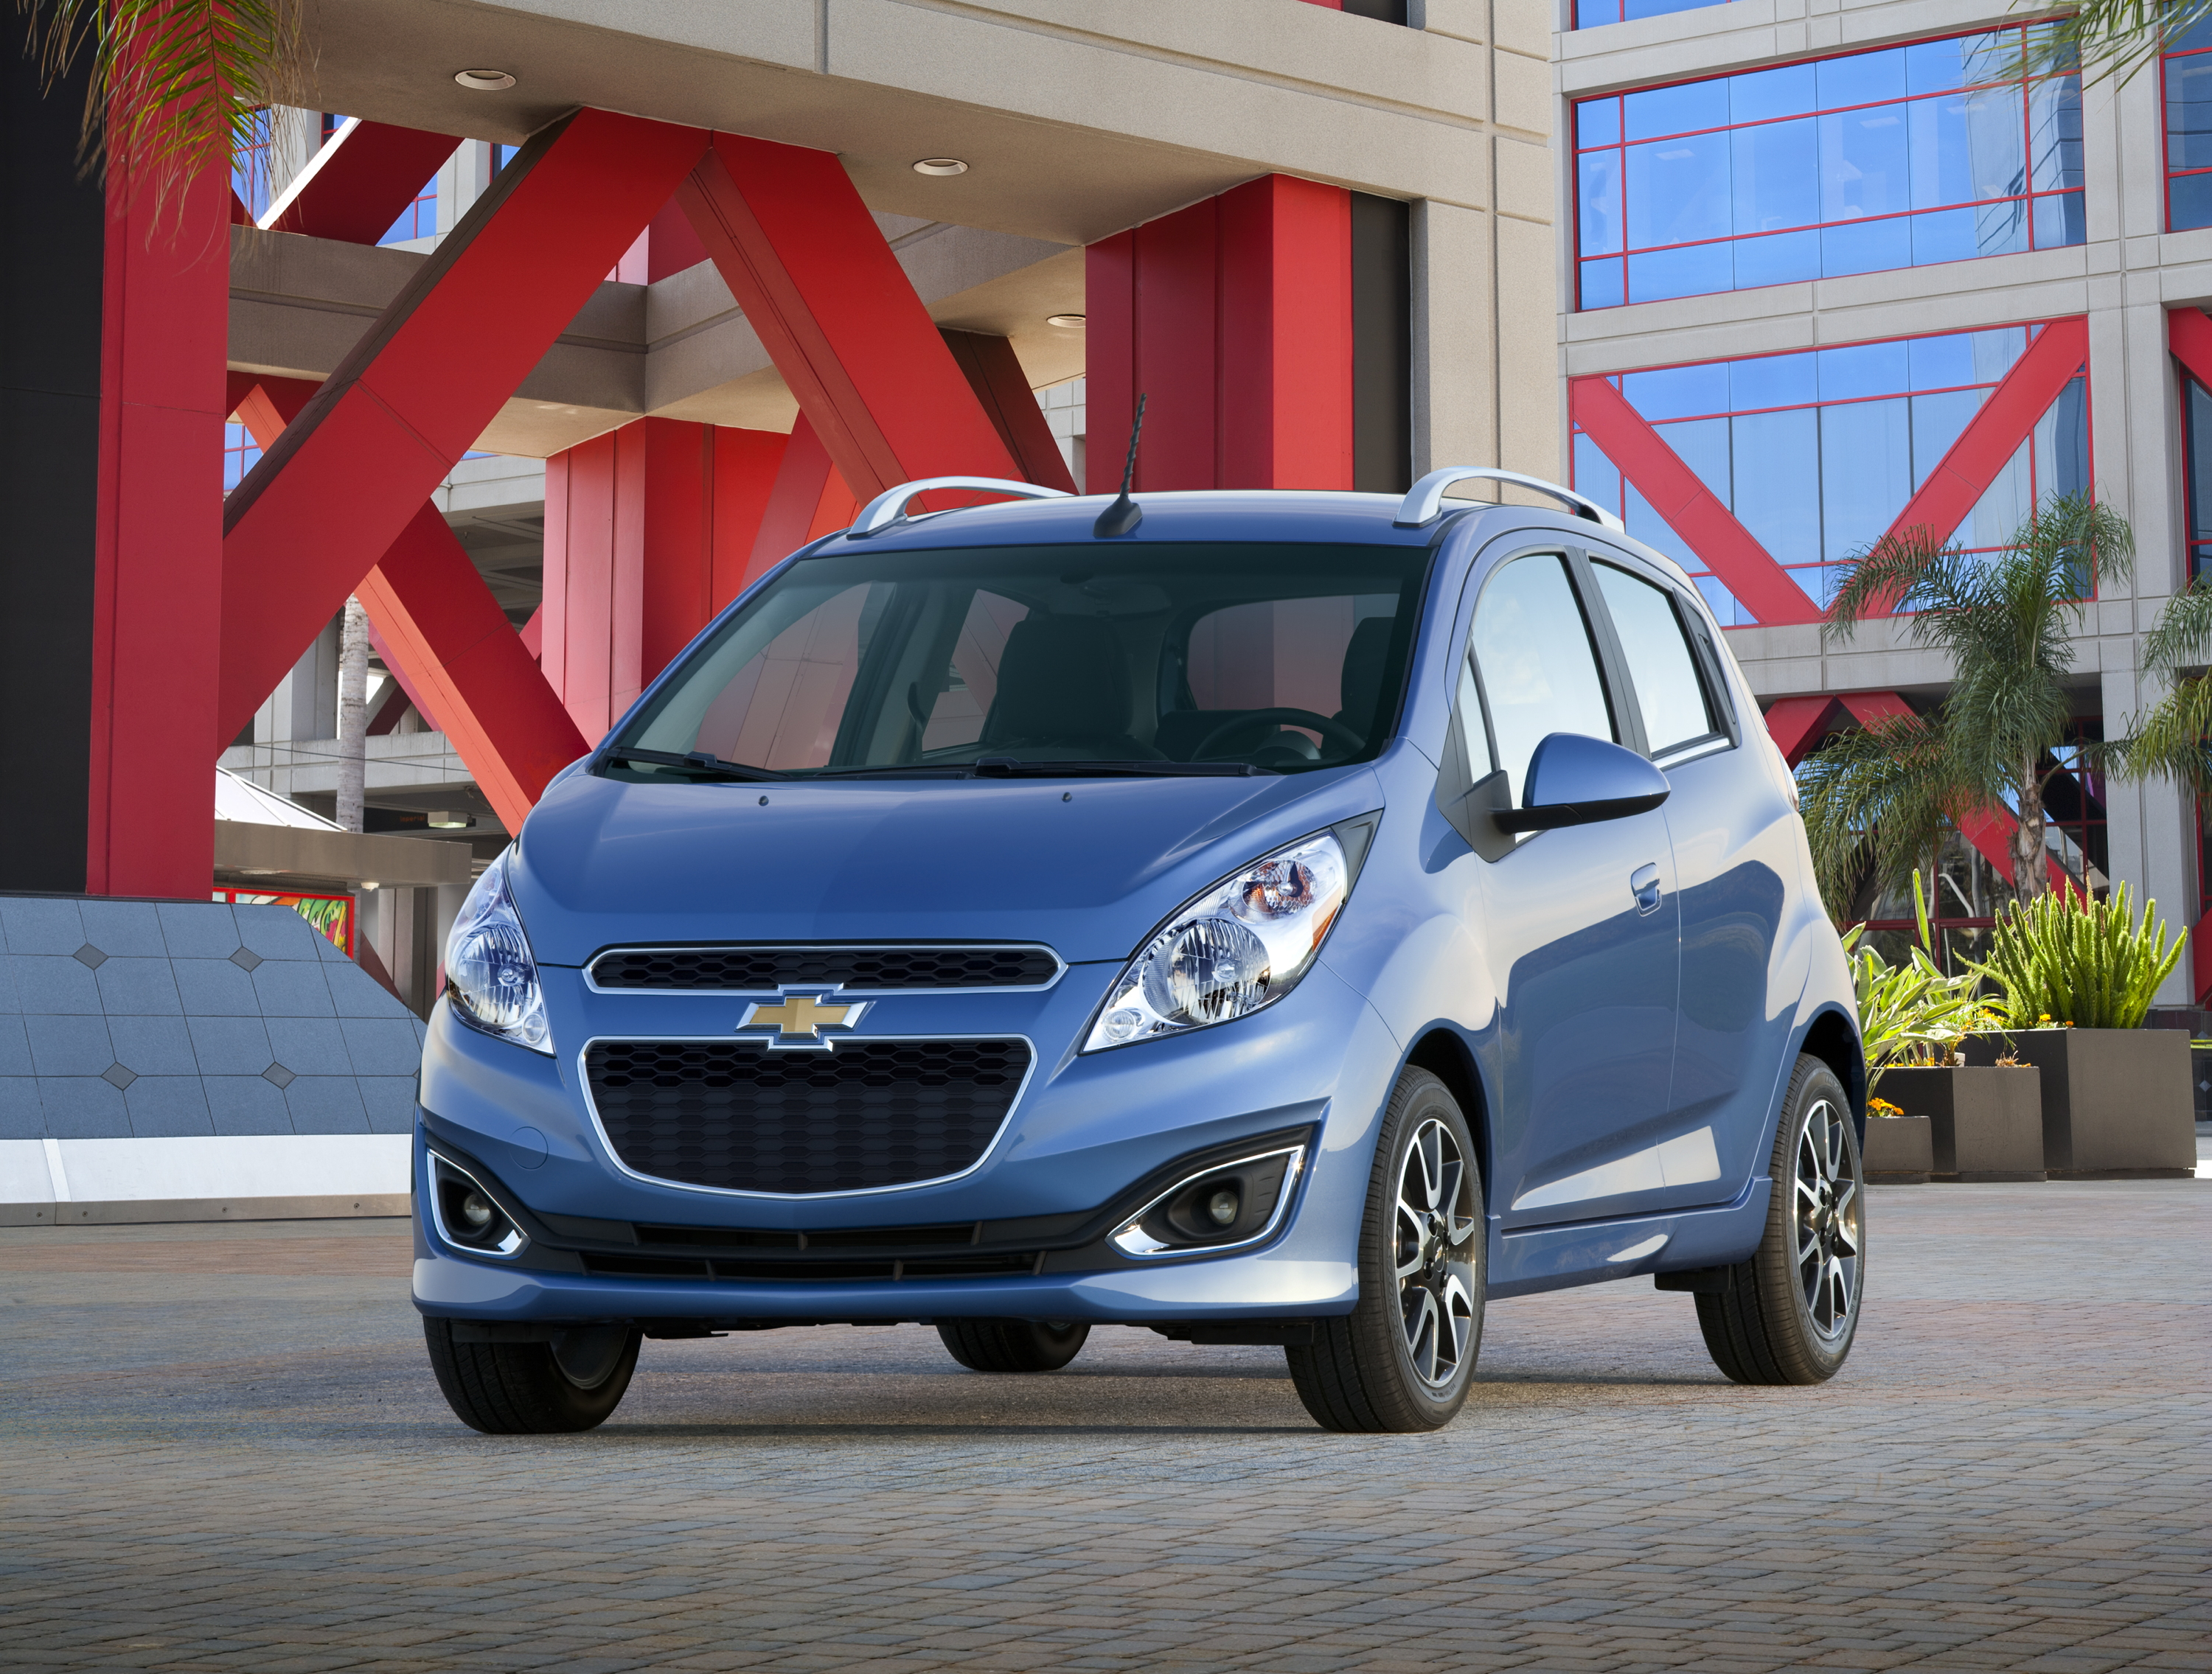 Buying Used: 2013-2017 Chevrolet Spark